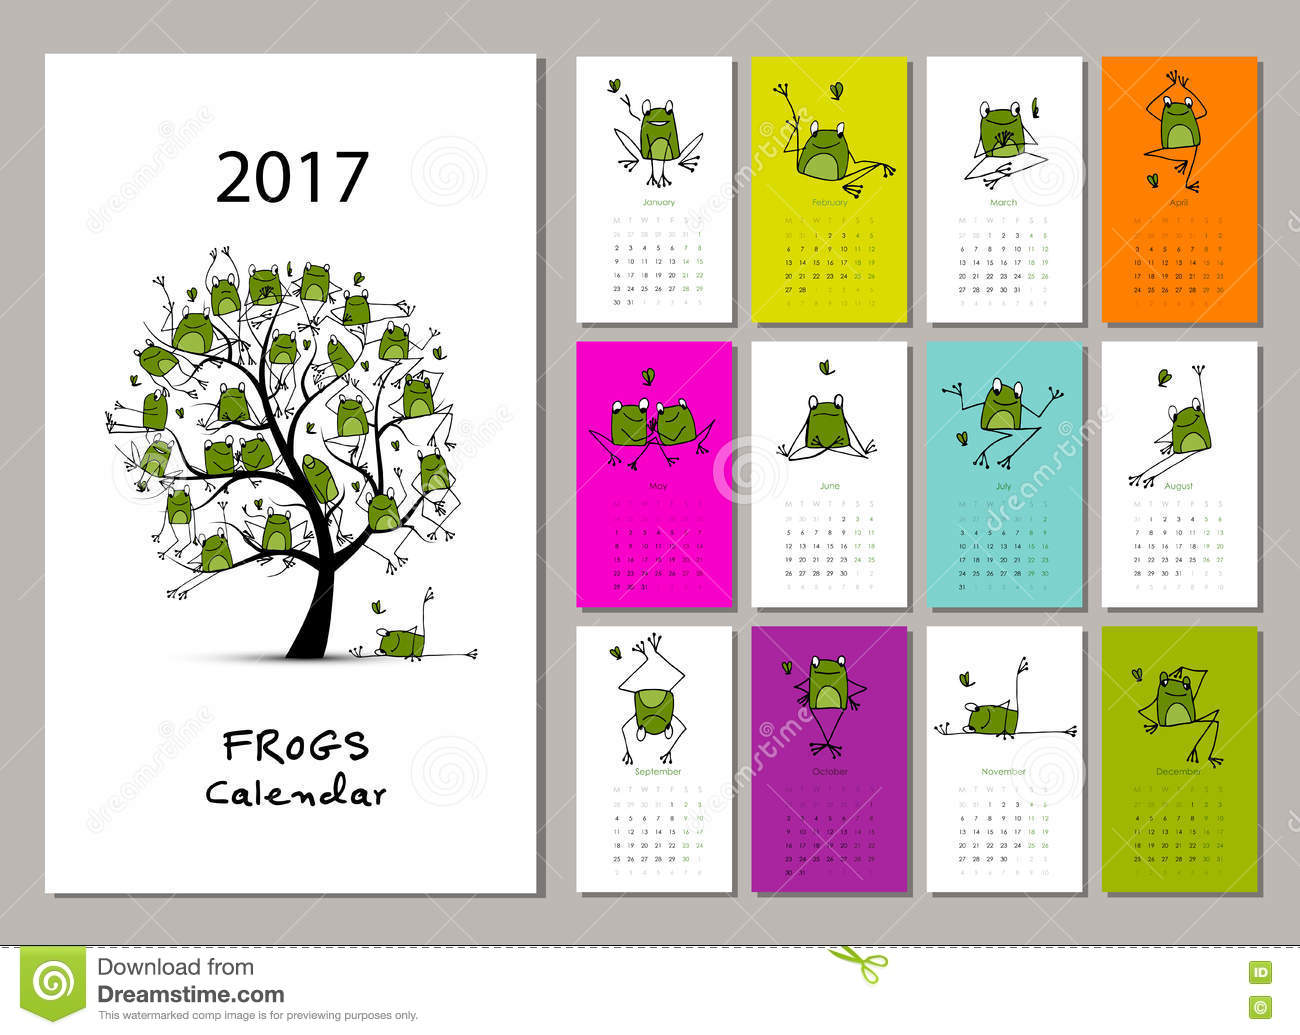 Illustration Calendar Design : Funny frogs calendar design stock vector image